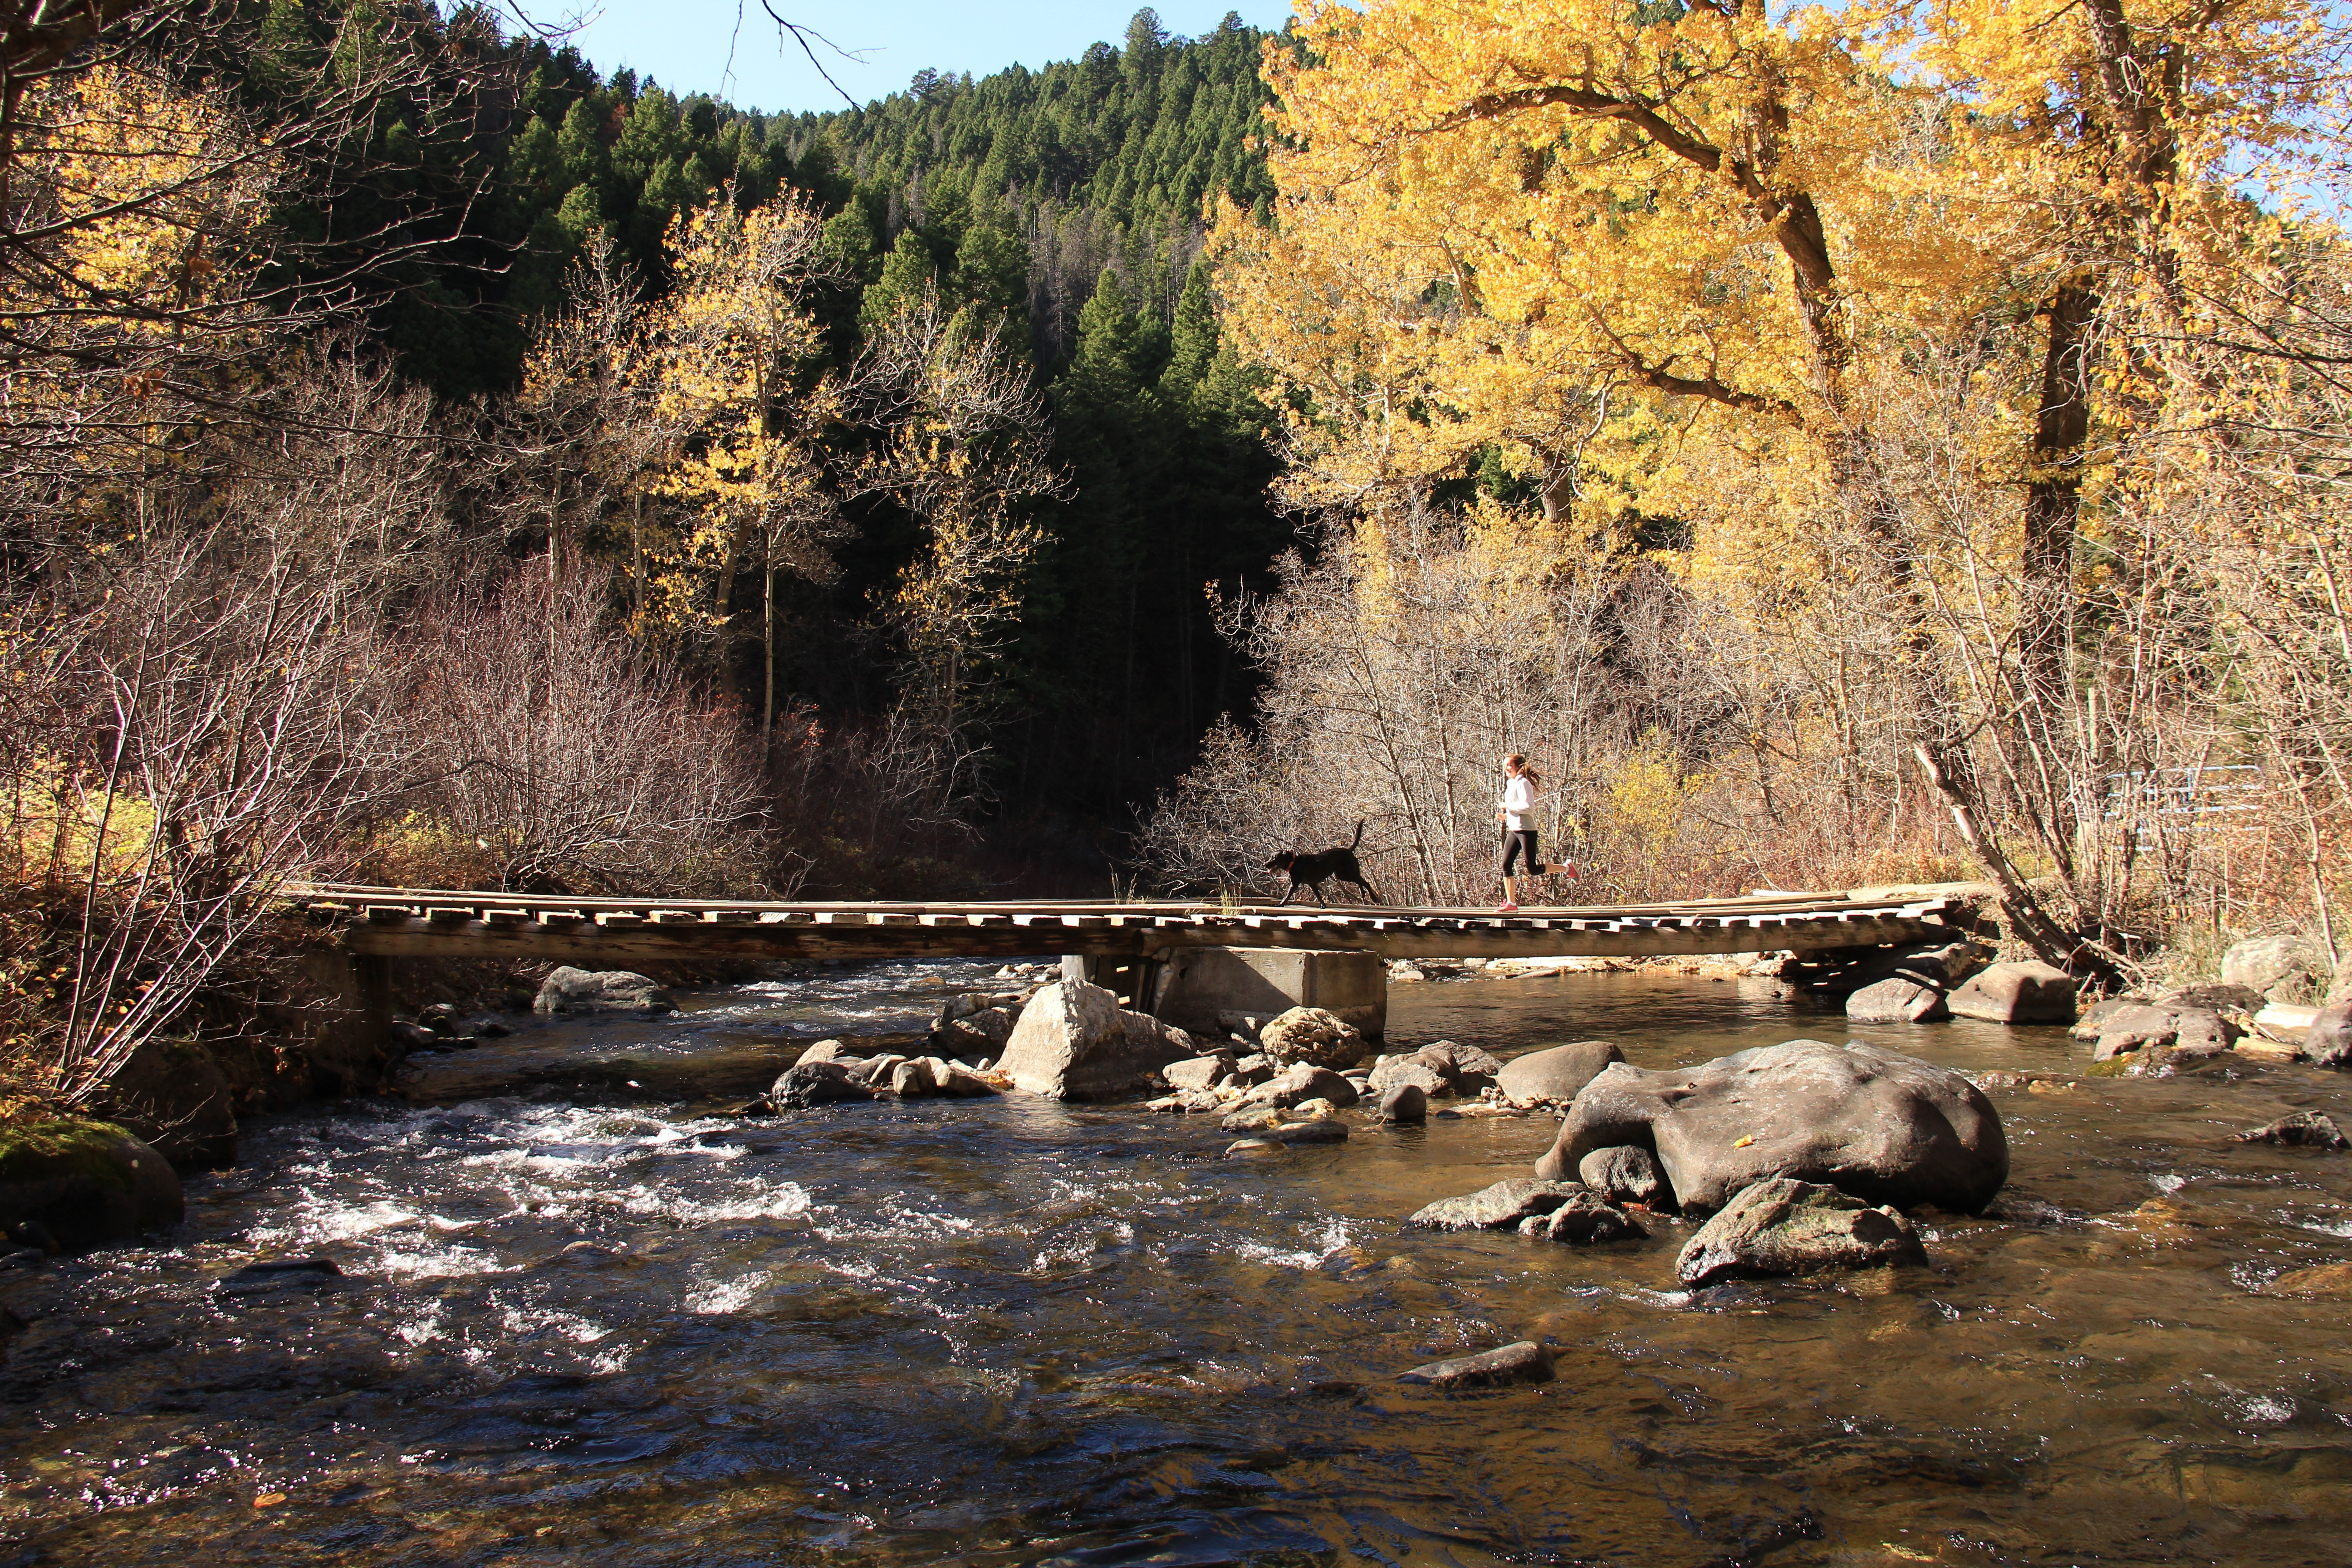 Visiting Bozeman in the Fall